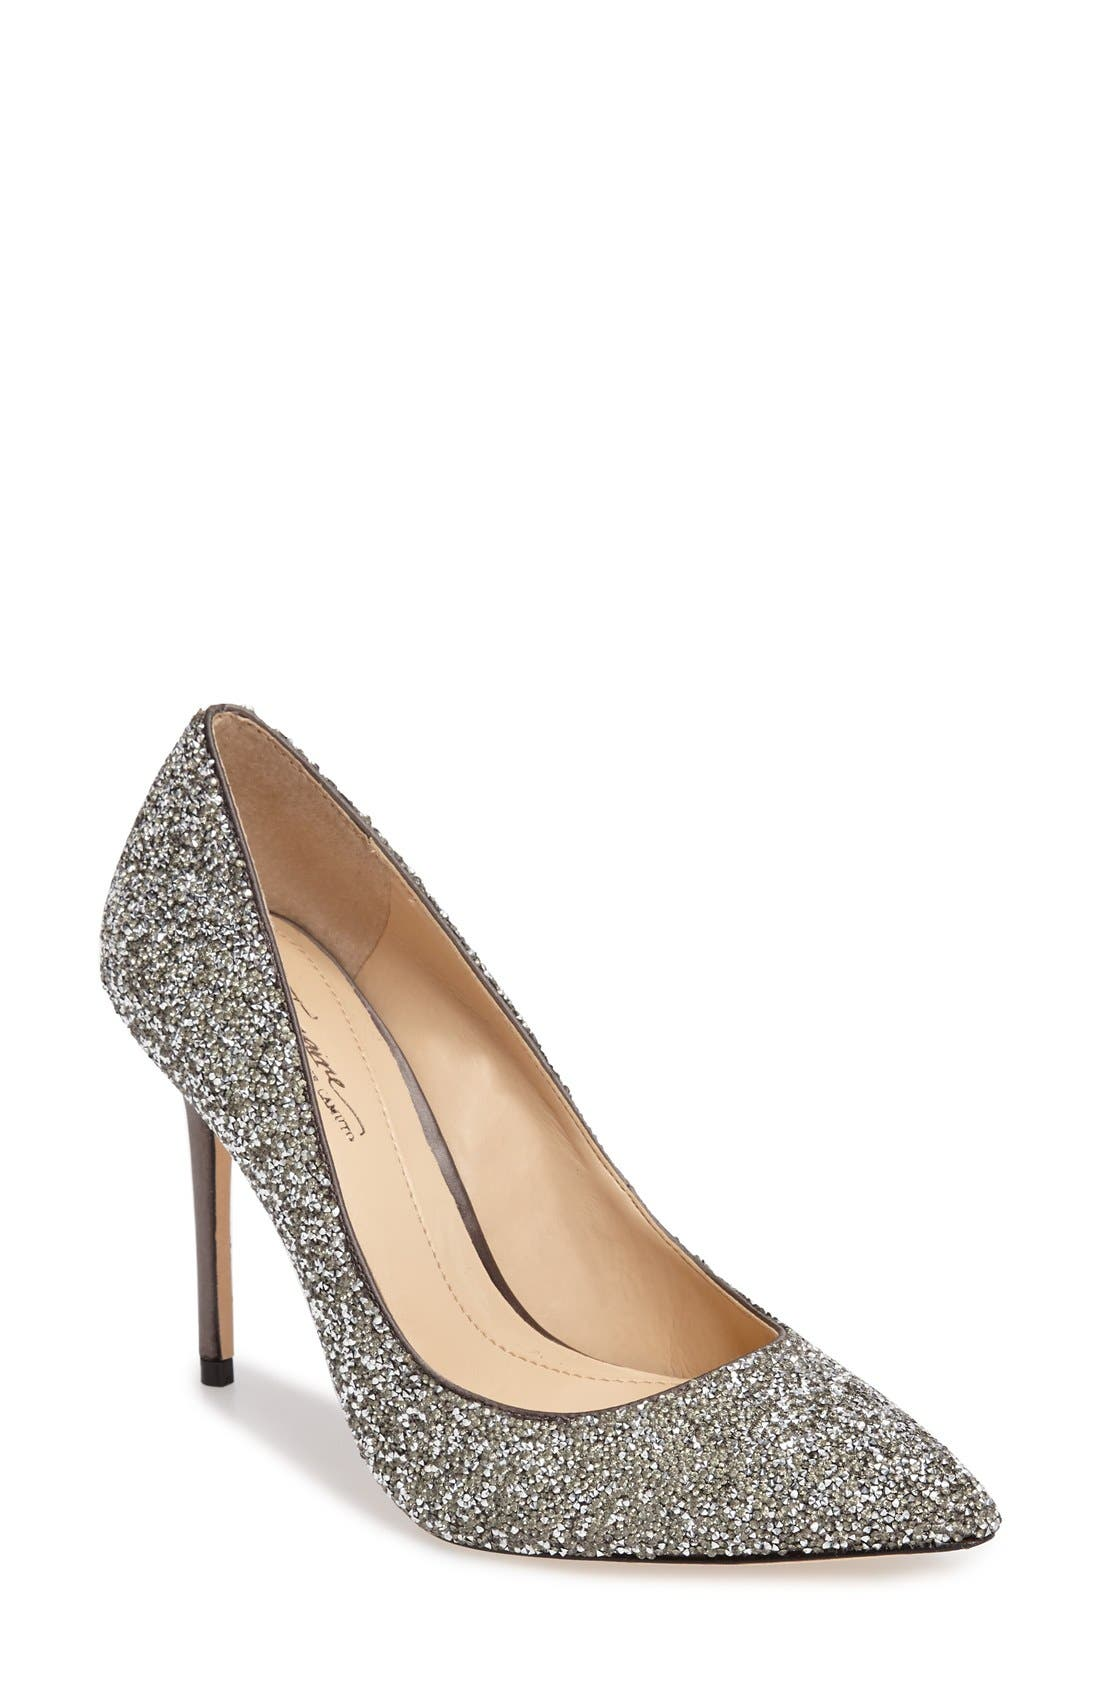 Alternate Image 1 Selected - Imagine by Vince Camuto 'Olson' Crystal Embellished Pump (Women)